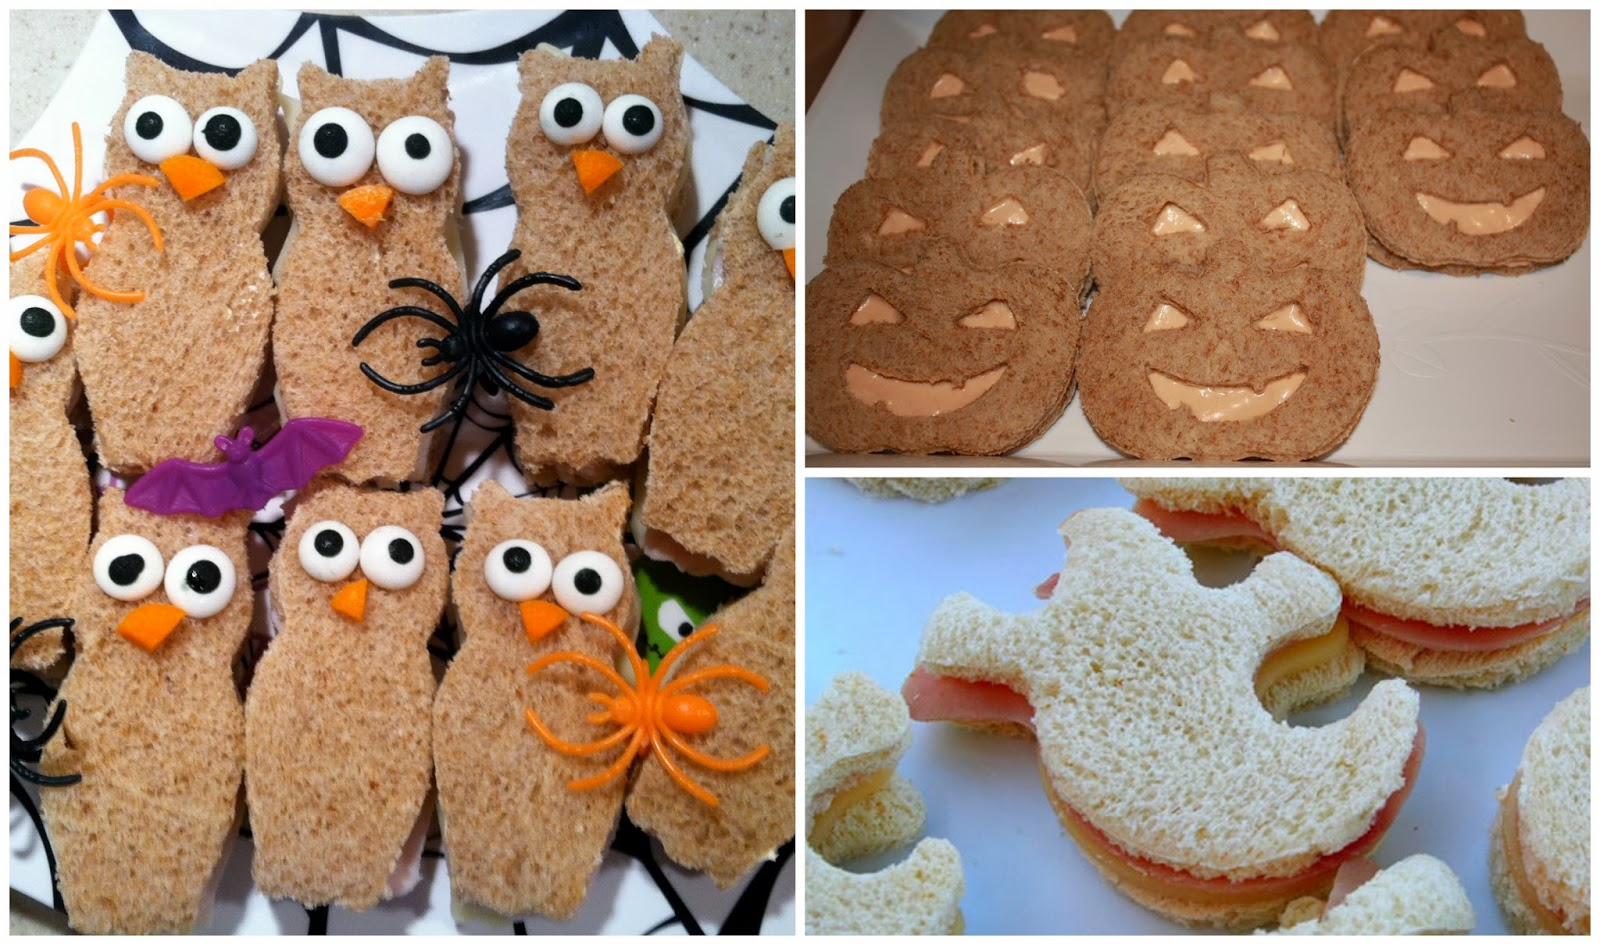 Handbags to change bags children 39 s halloween party food ideas for Food ideas for toddler halloween party